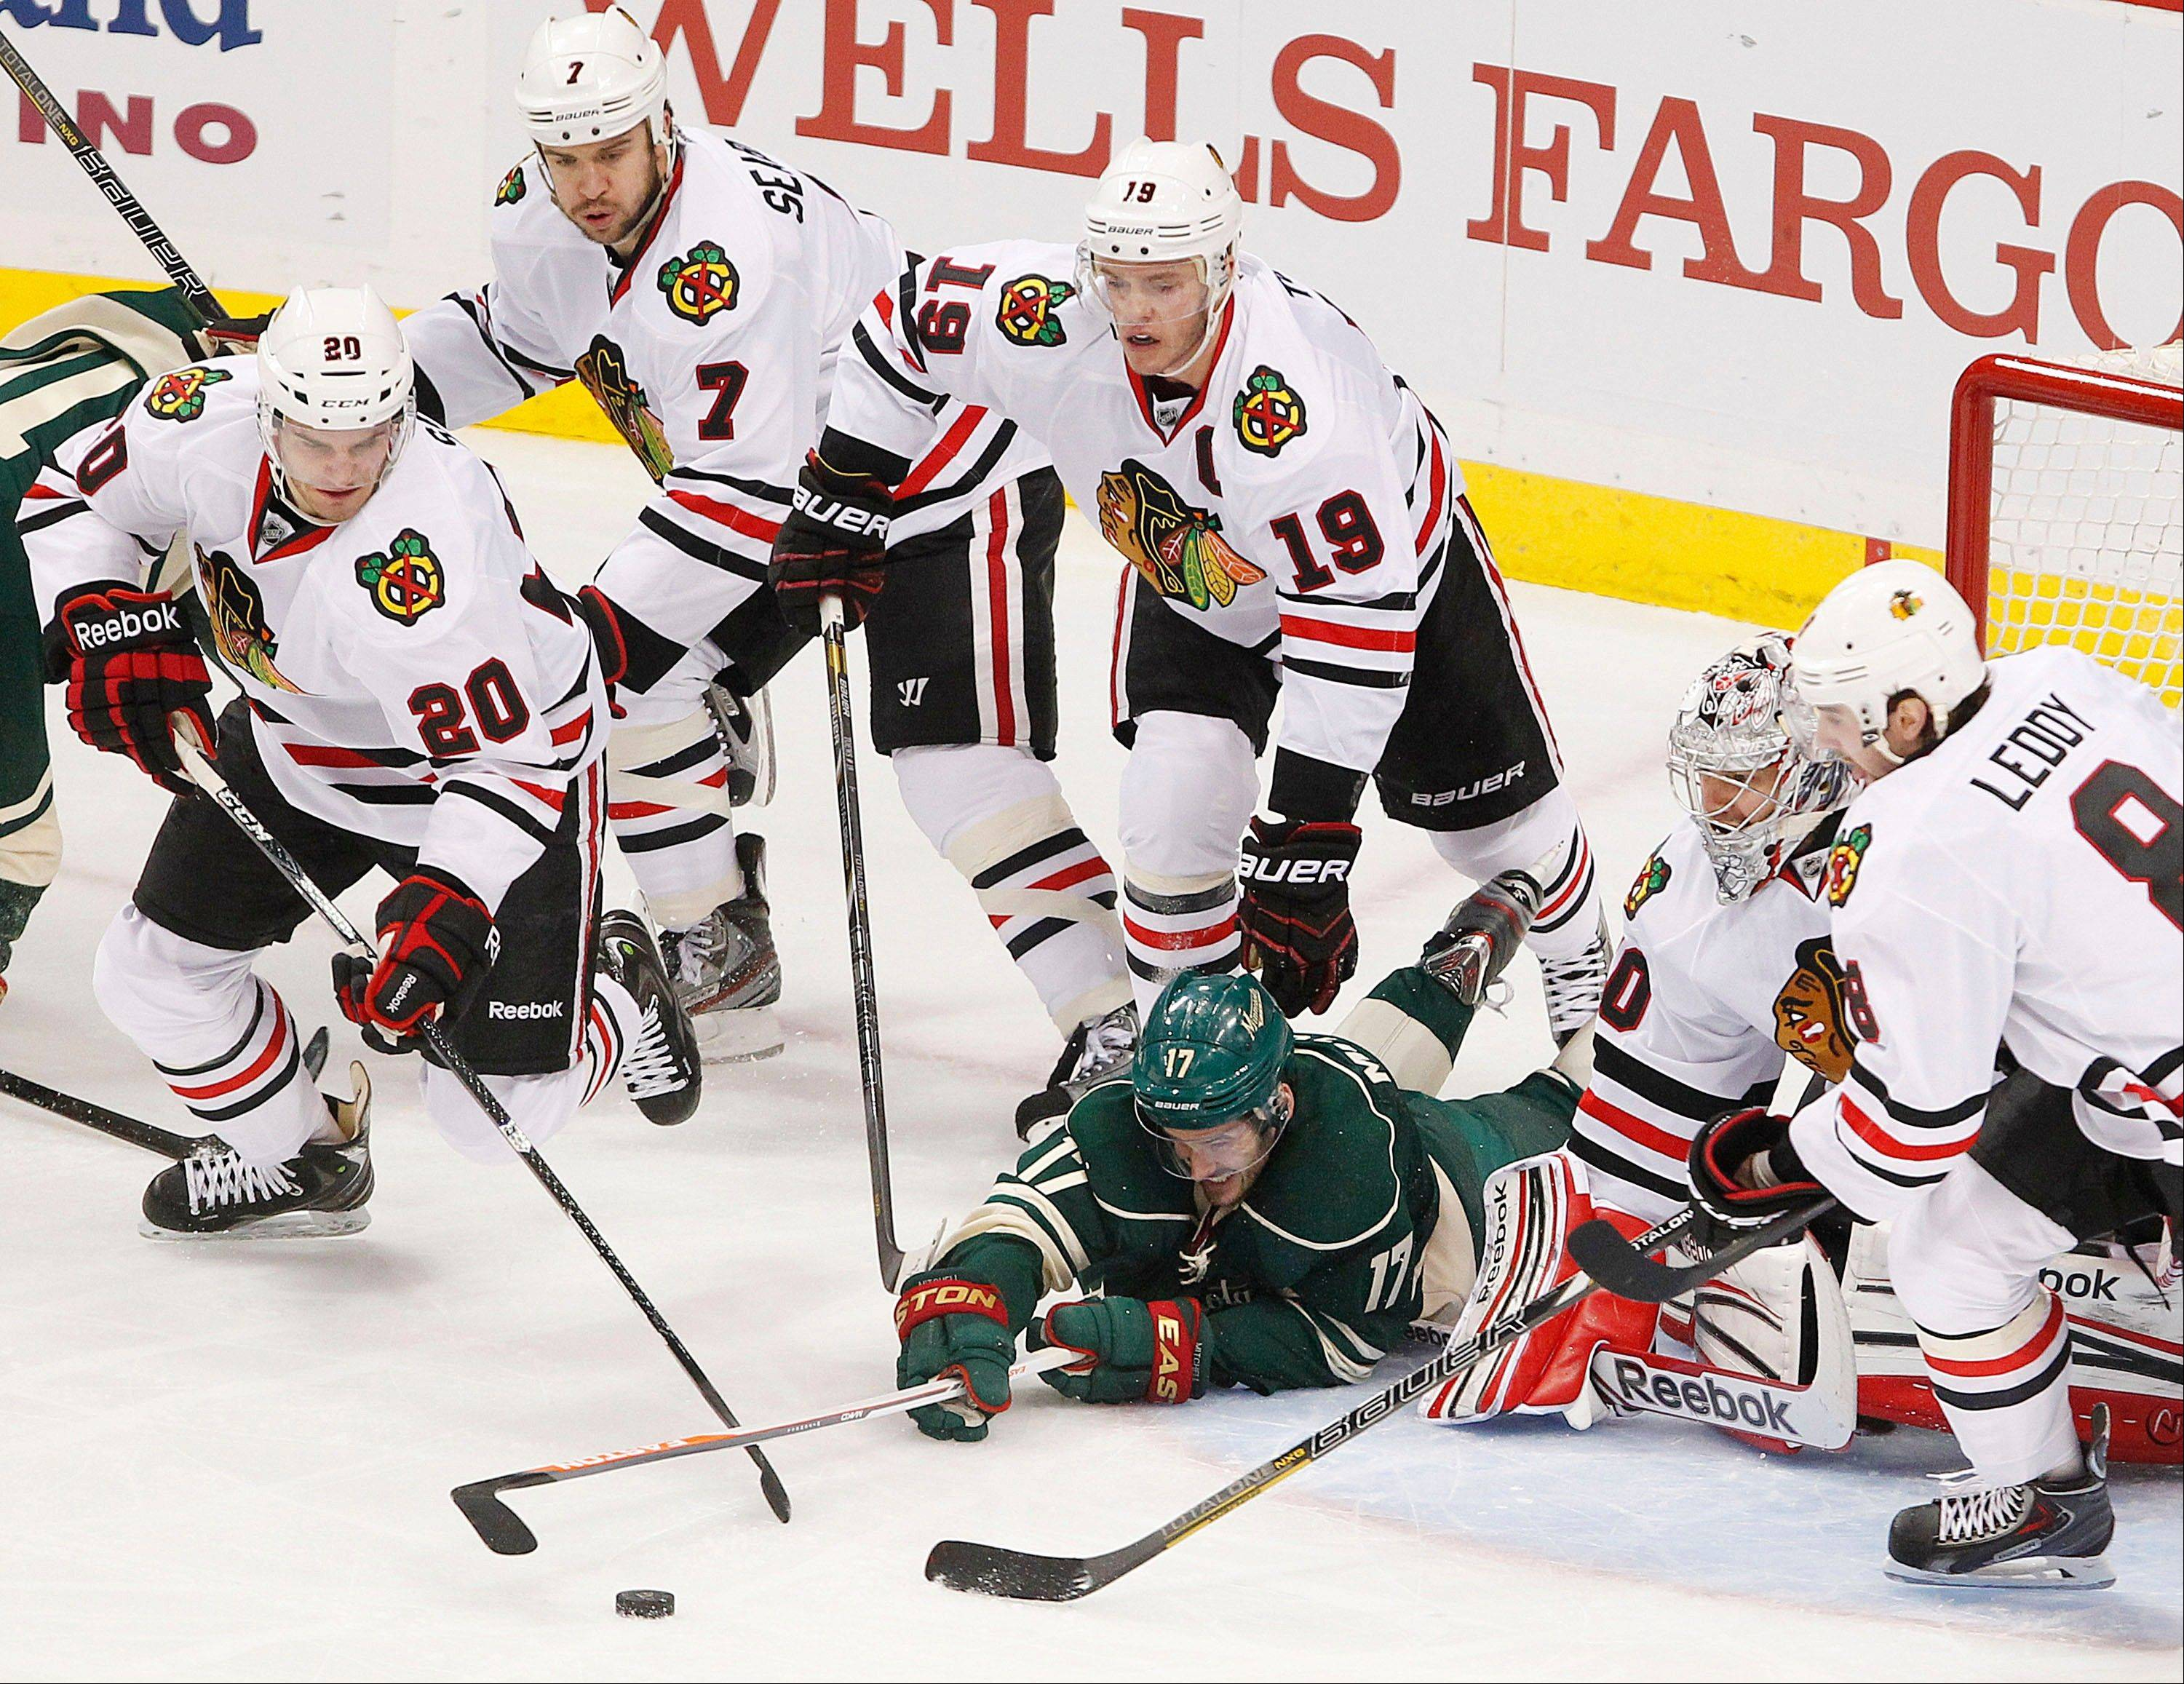 The Hawks need to have all hands on deck, as on this play when they swarmed around Torrey Mitchell on Sunday during the Wild�s 3-2 overtime win in Game 3 of their Western Conference playoff series in Minnesota.